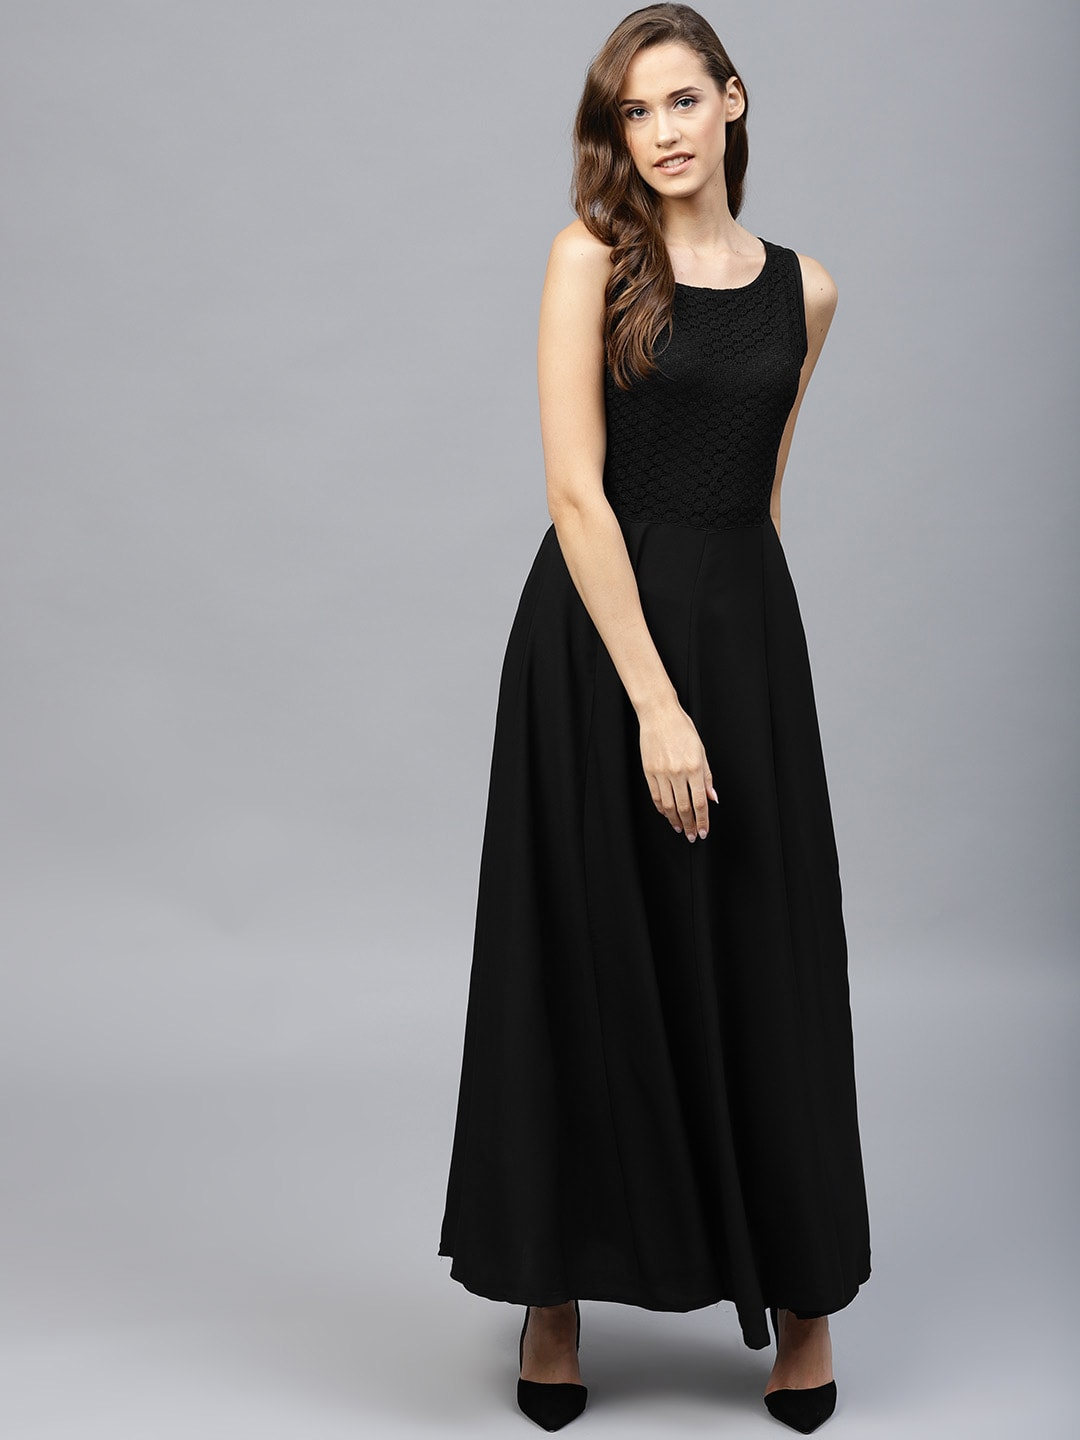 23e0961821d9 Black Dress - Buy Black Dresses For Women in India